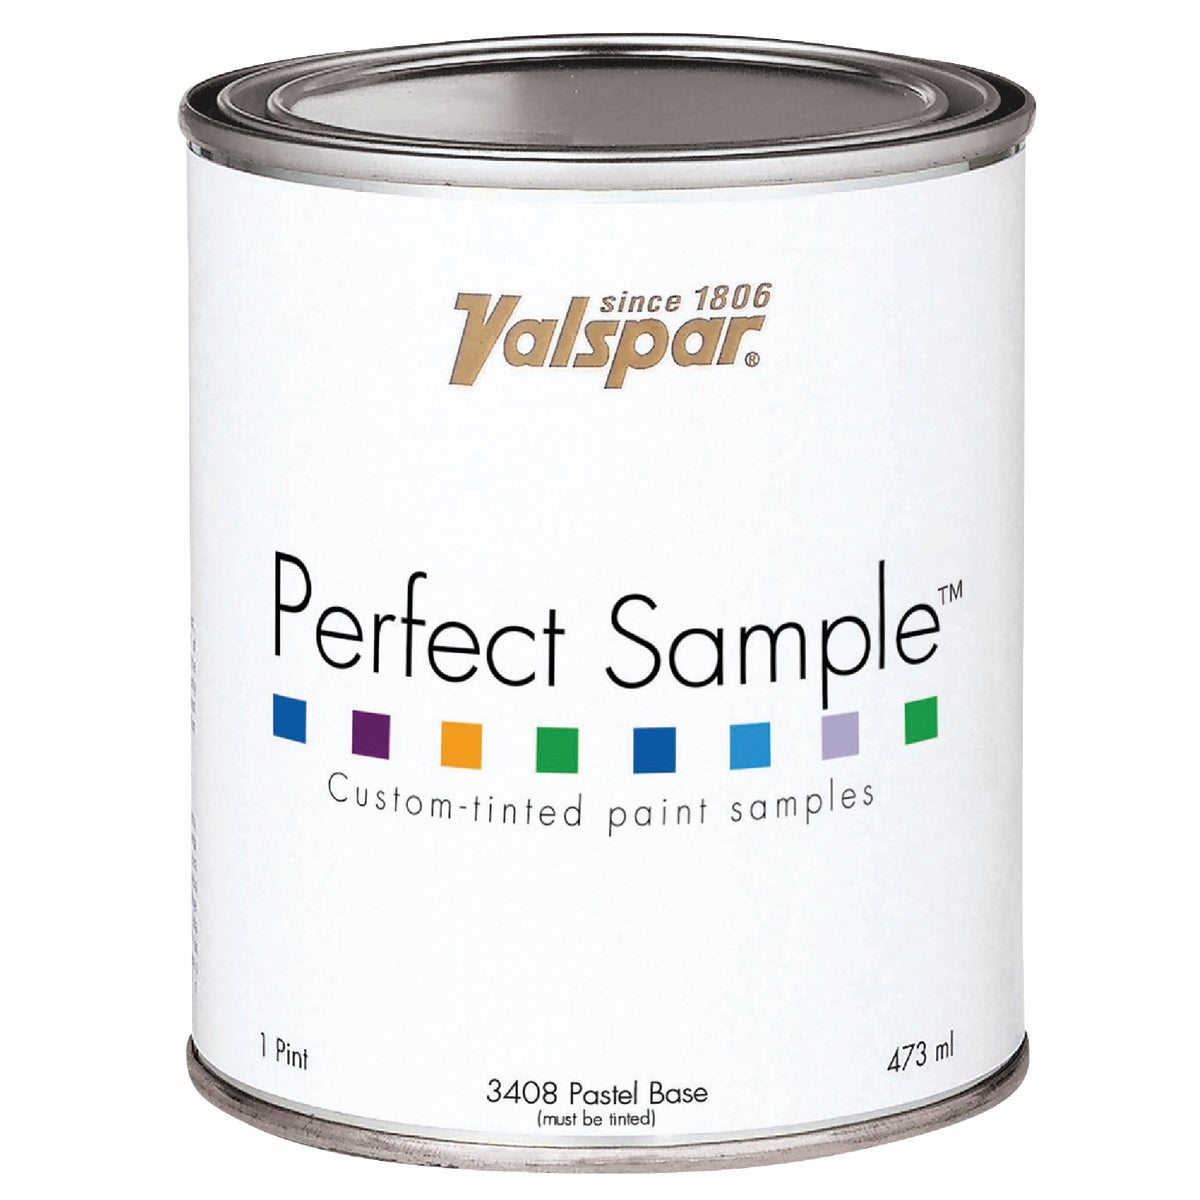 PASTEL BASE SAMPLE PAINT - 027.0003408.004 by Valspar Corp